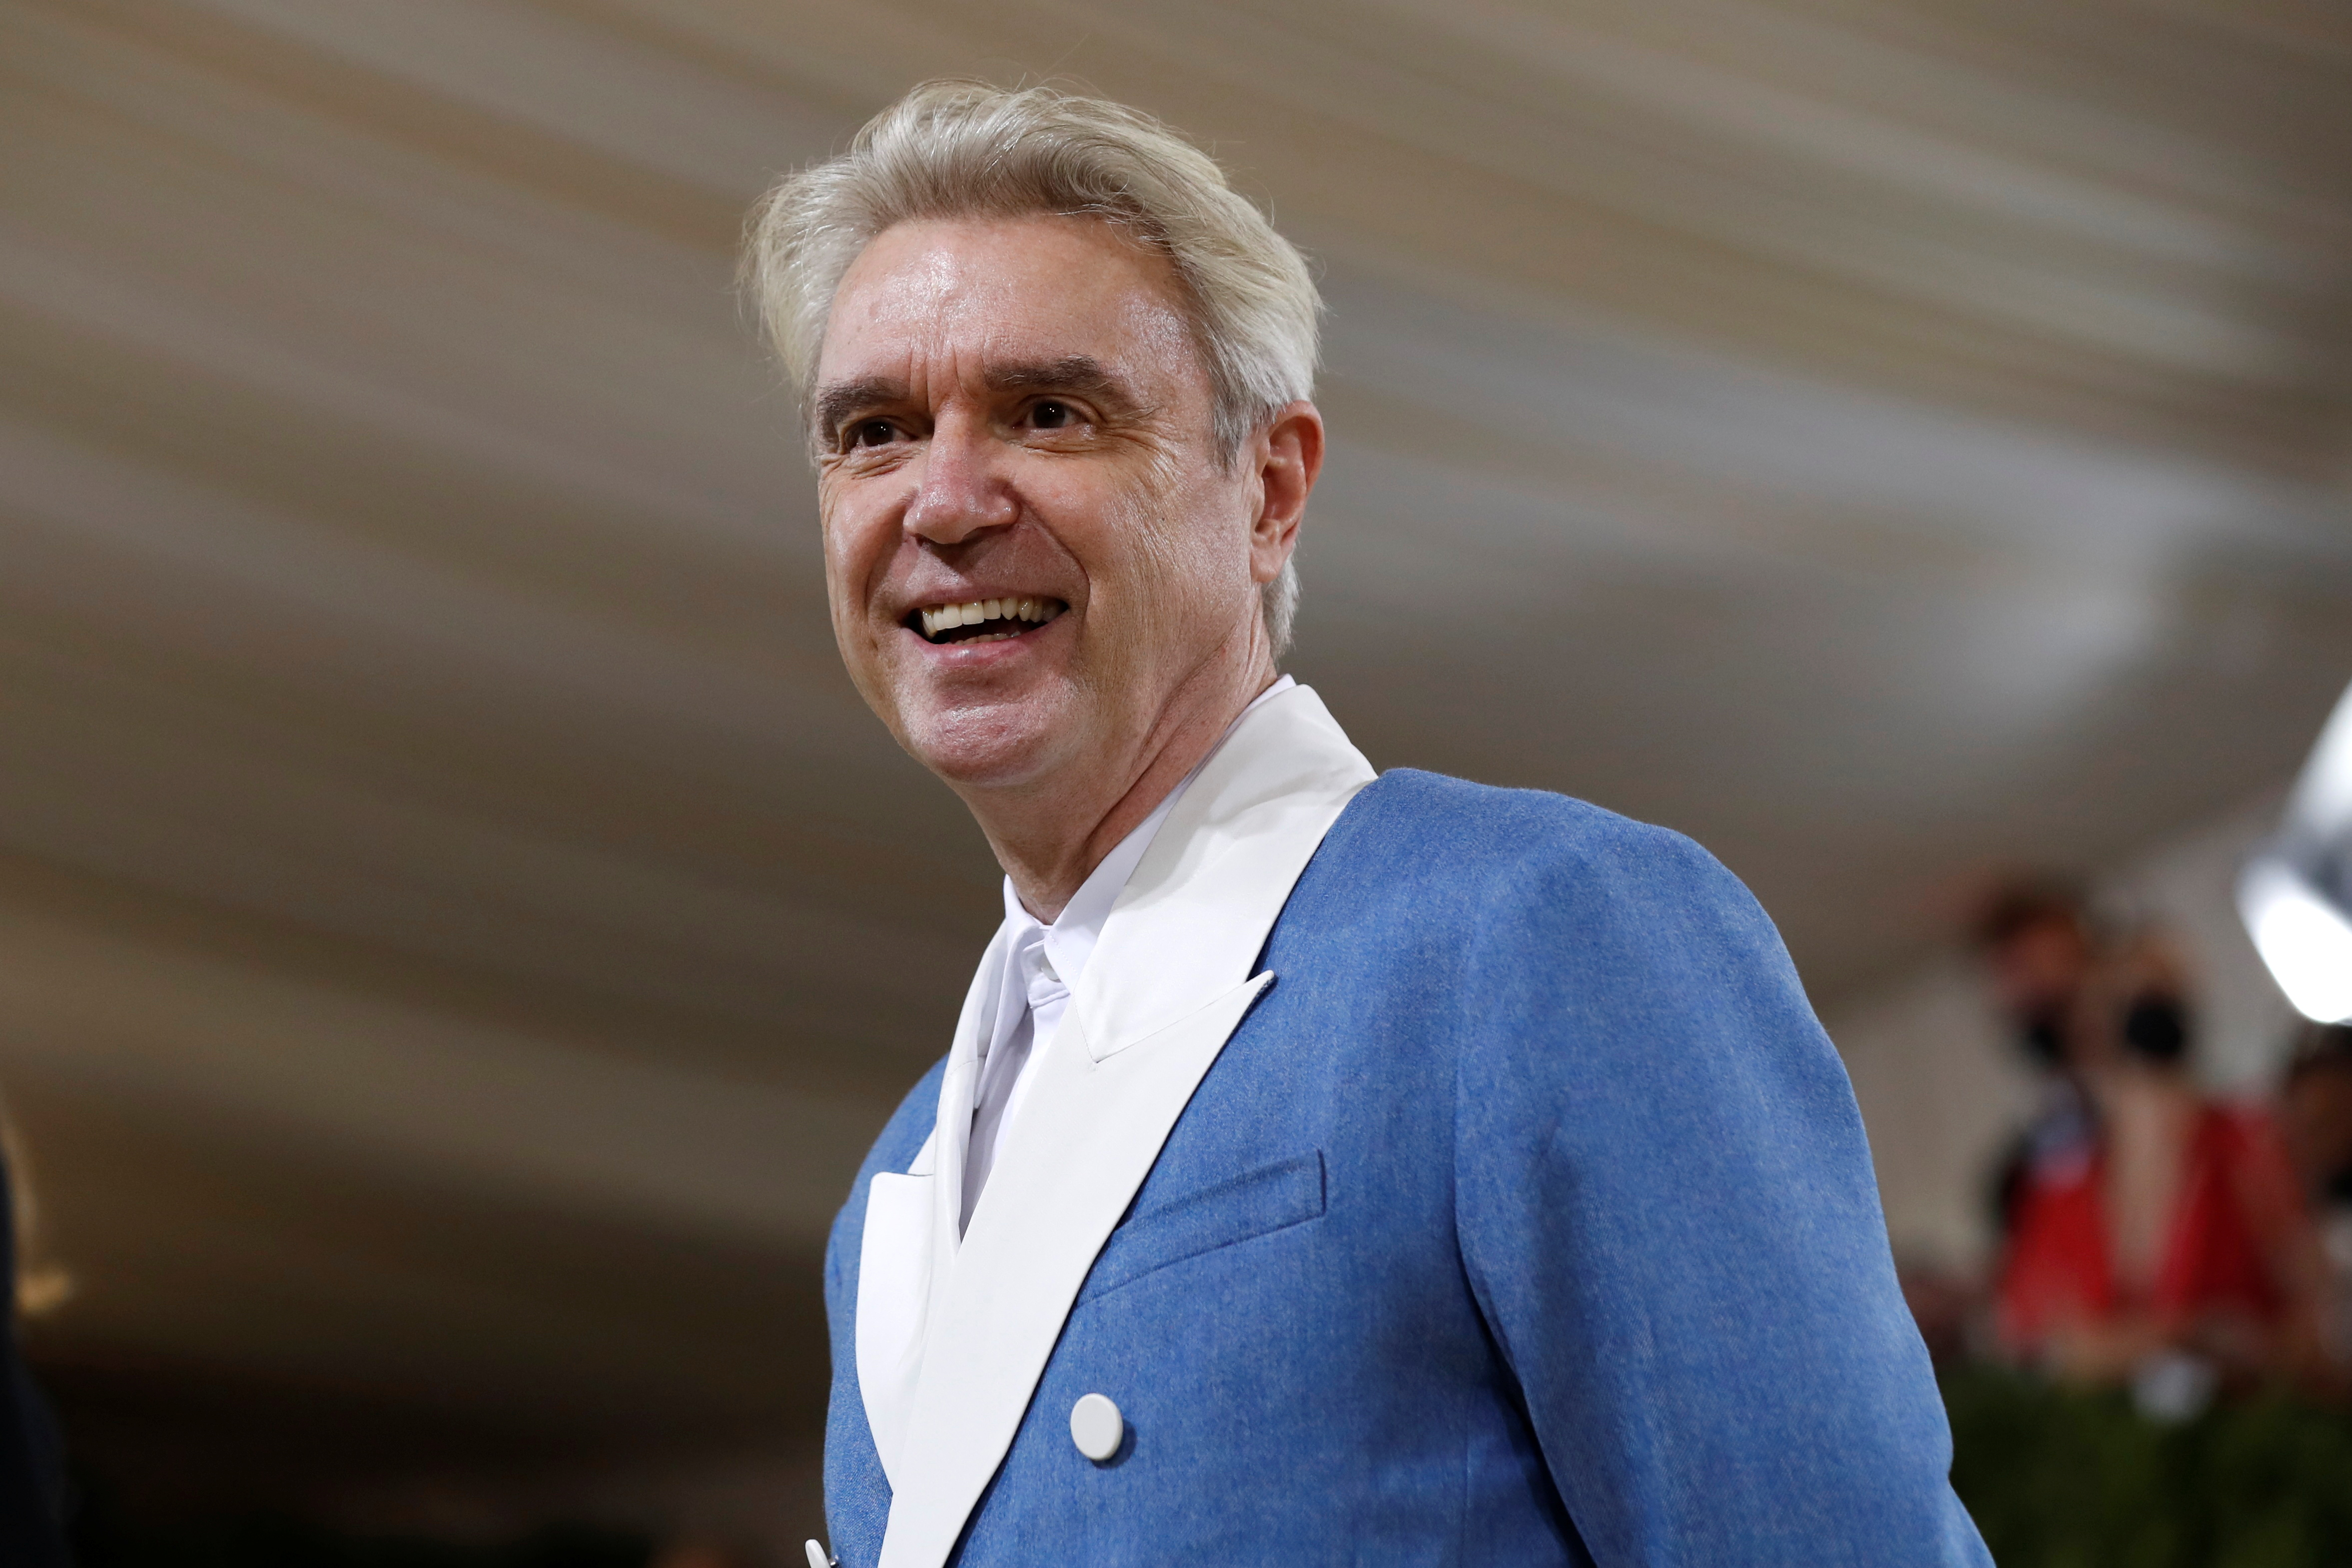 Metropolitan Museum of Art Costume Institute Gala - Met Gala - In America: A Lexicon of Fashion - Arrivals - New York City, U.S. - September 13, 2021. Musician David Byrne. REUTERS/Mario Anzuoni